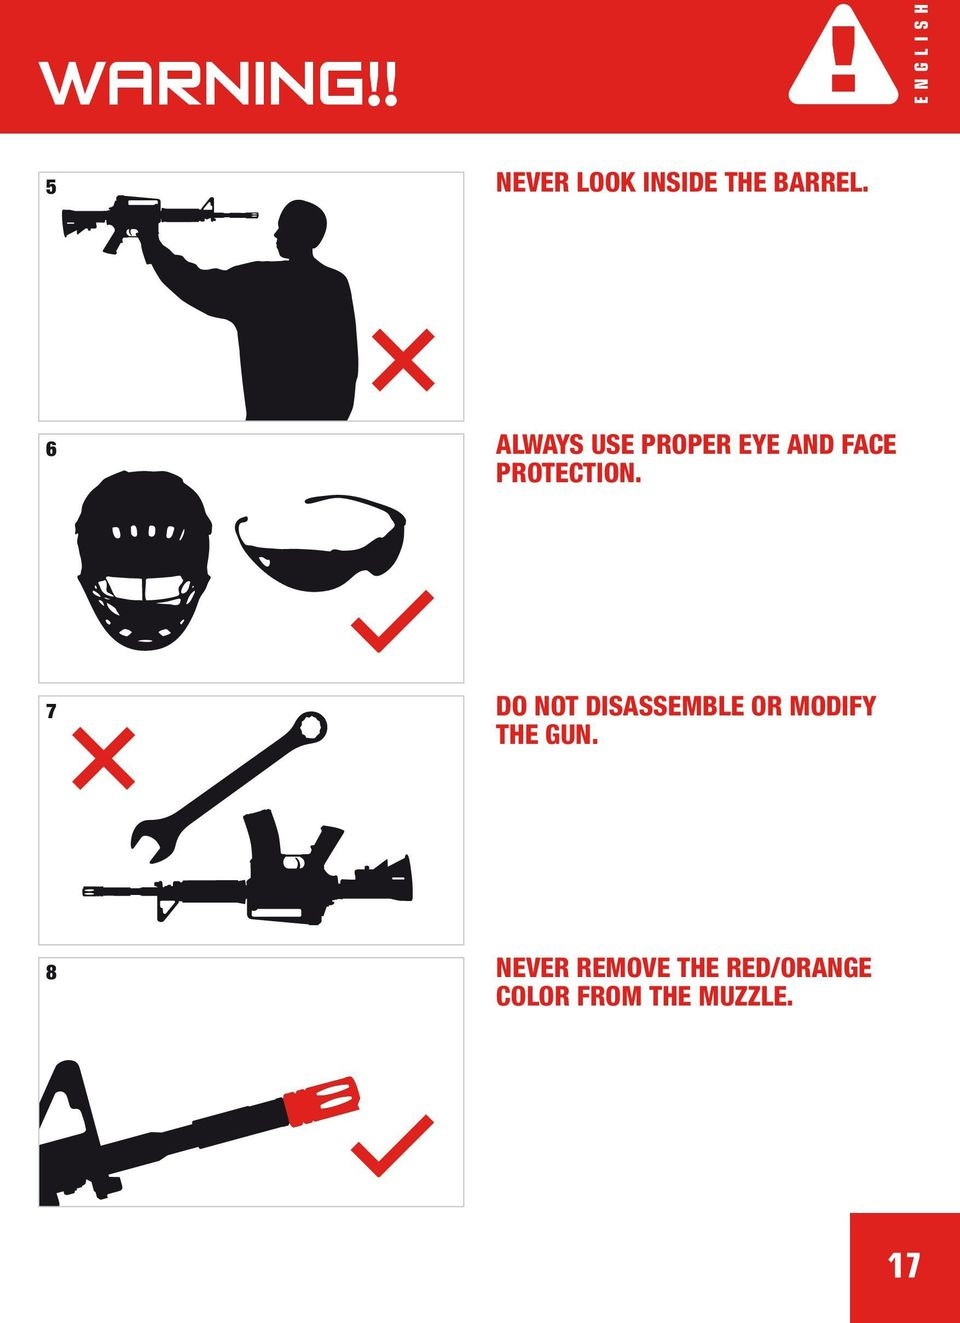 7 do NOT DISASSEMBLE OR MODIFY THE GUN.